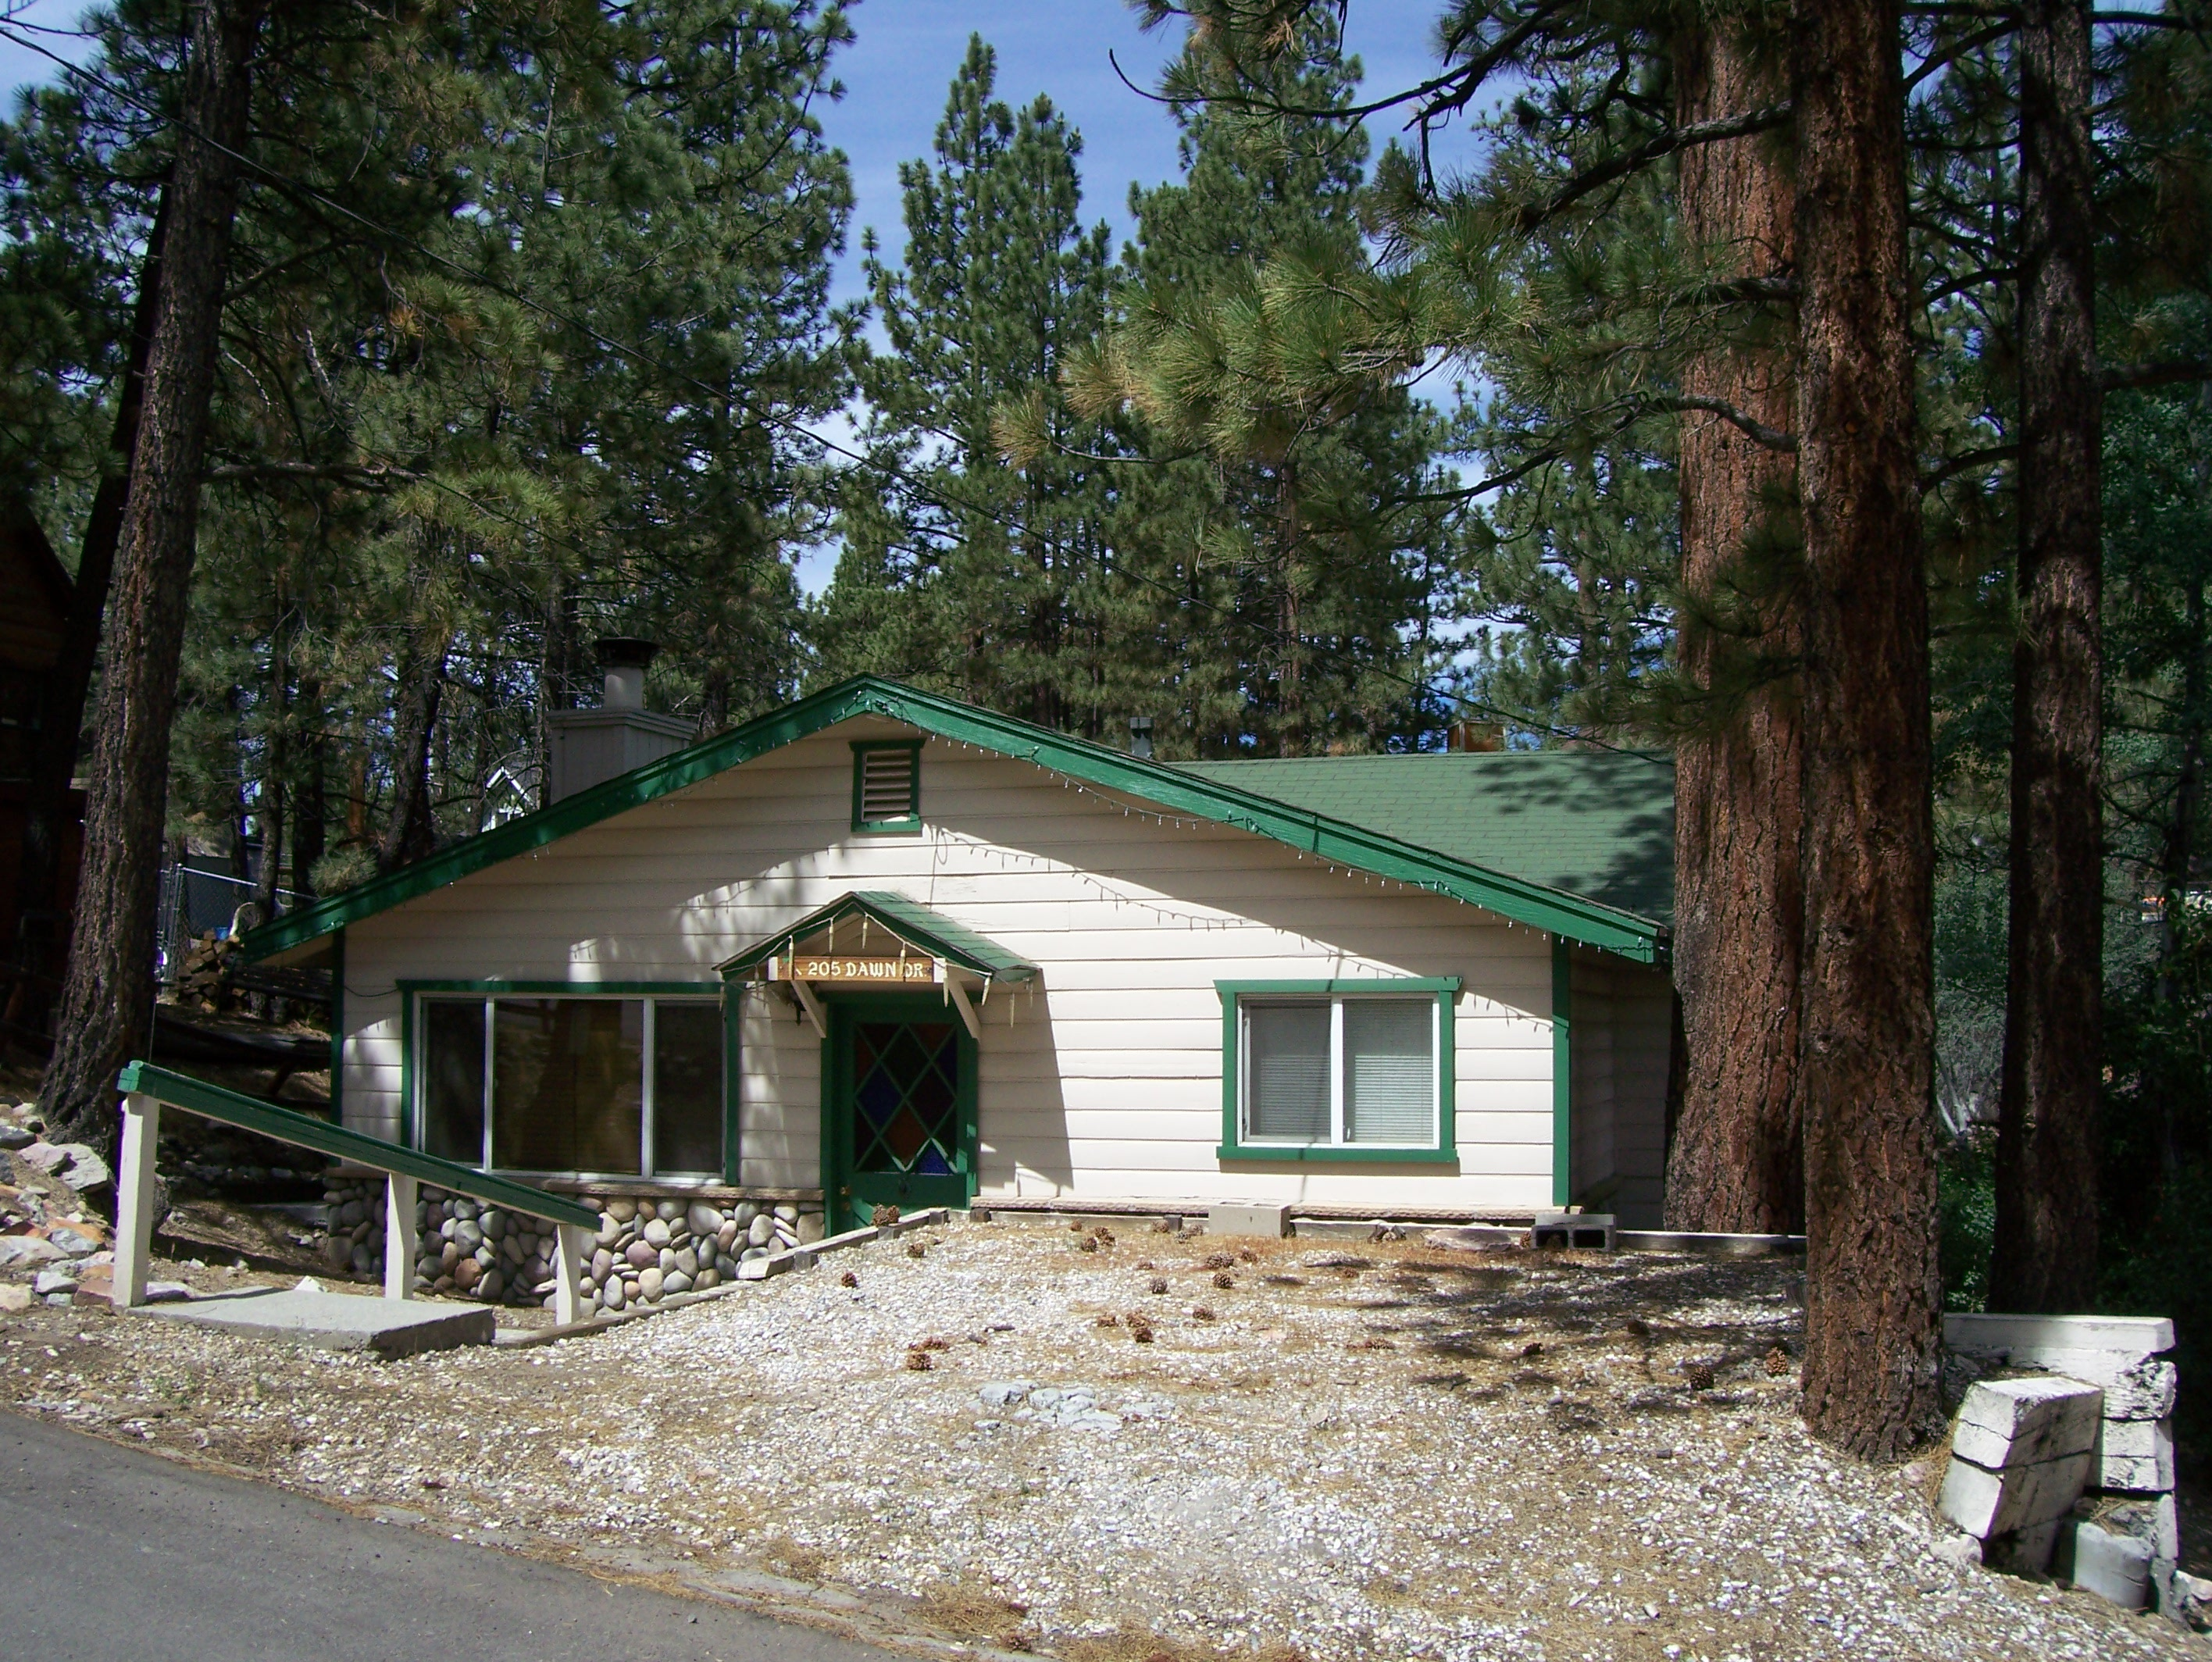 Single Family Home for Sale at 205 Dawn Big Bear City, California 92314 United States